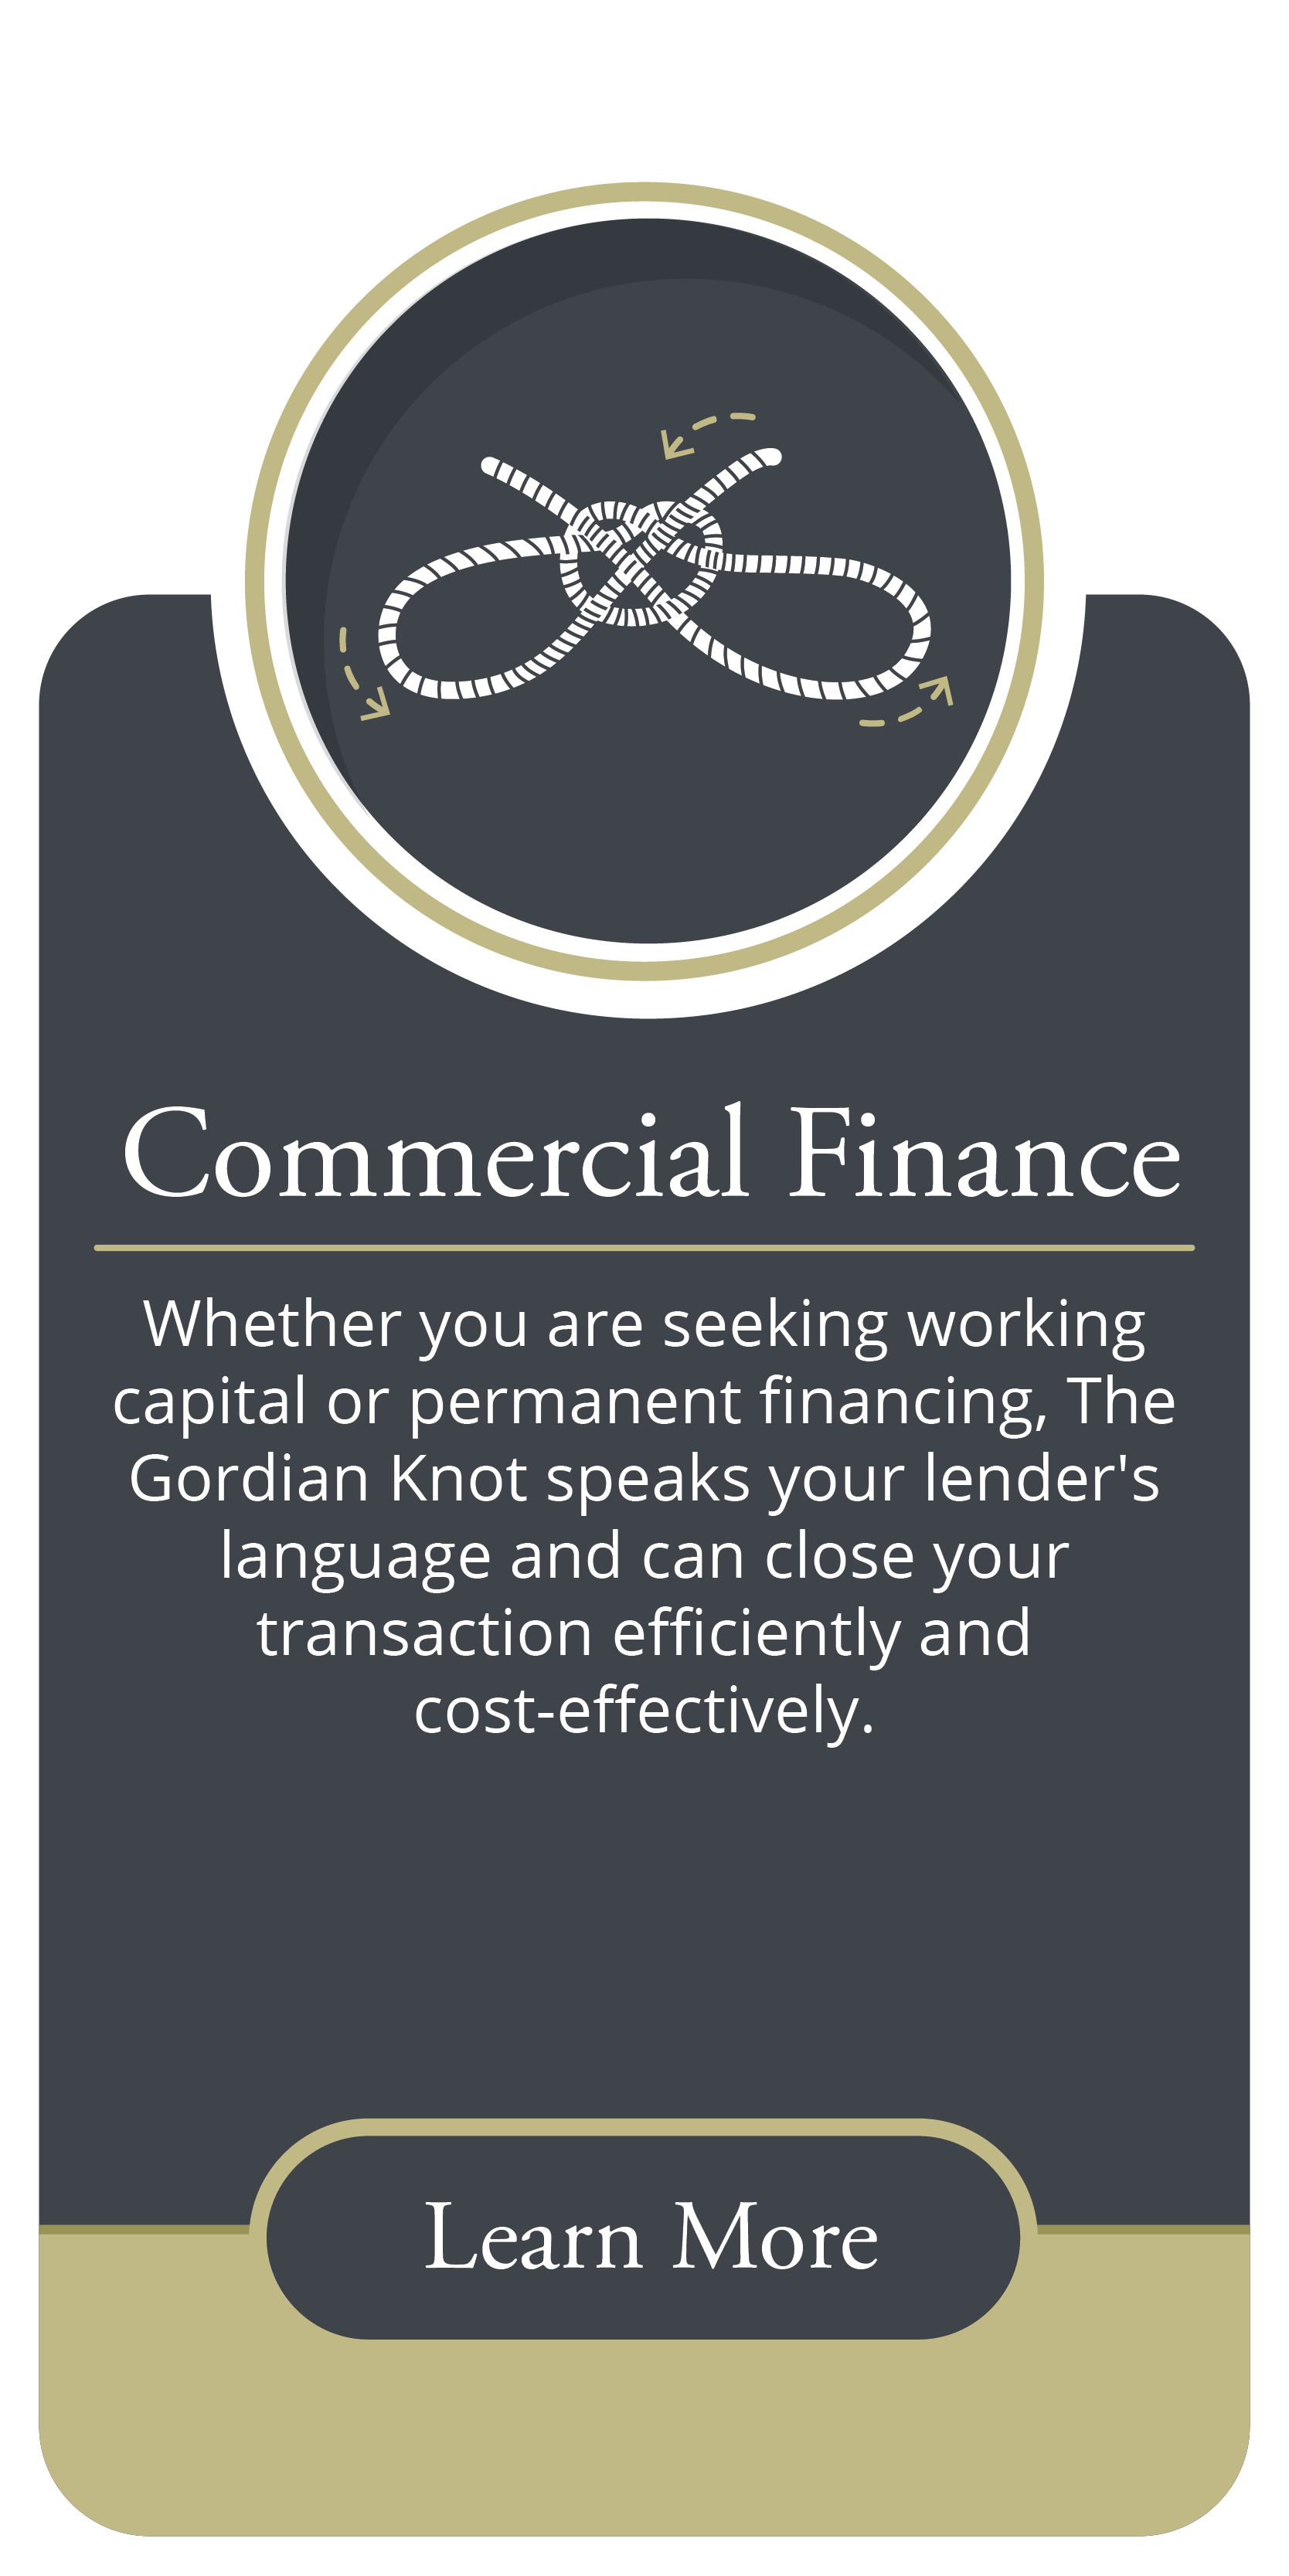 GordianKnot_service_commercial_finance.png